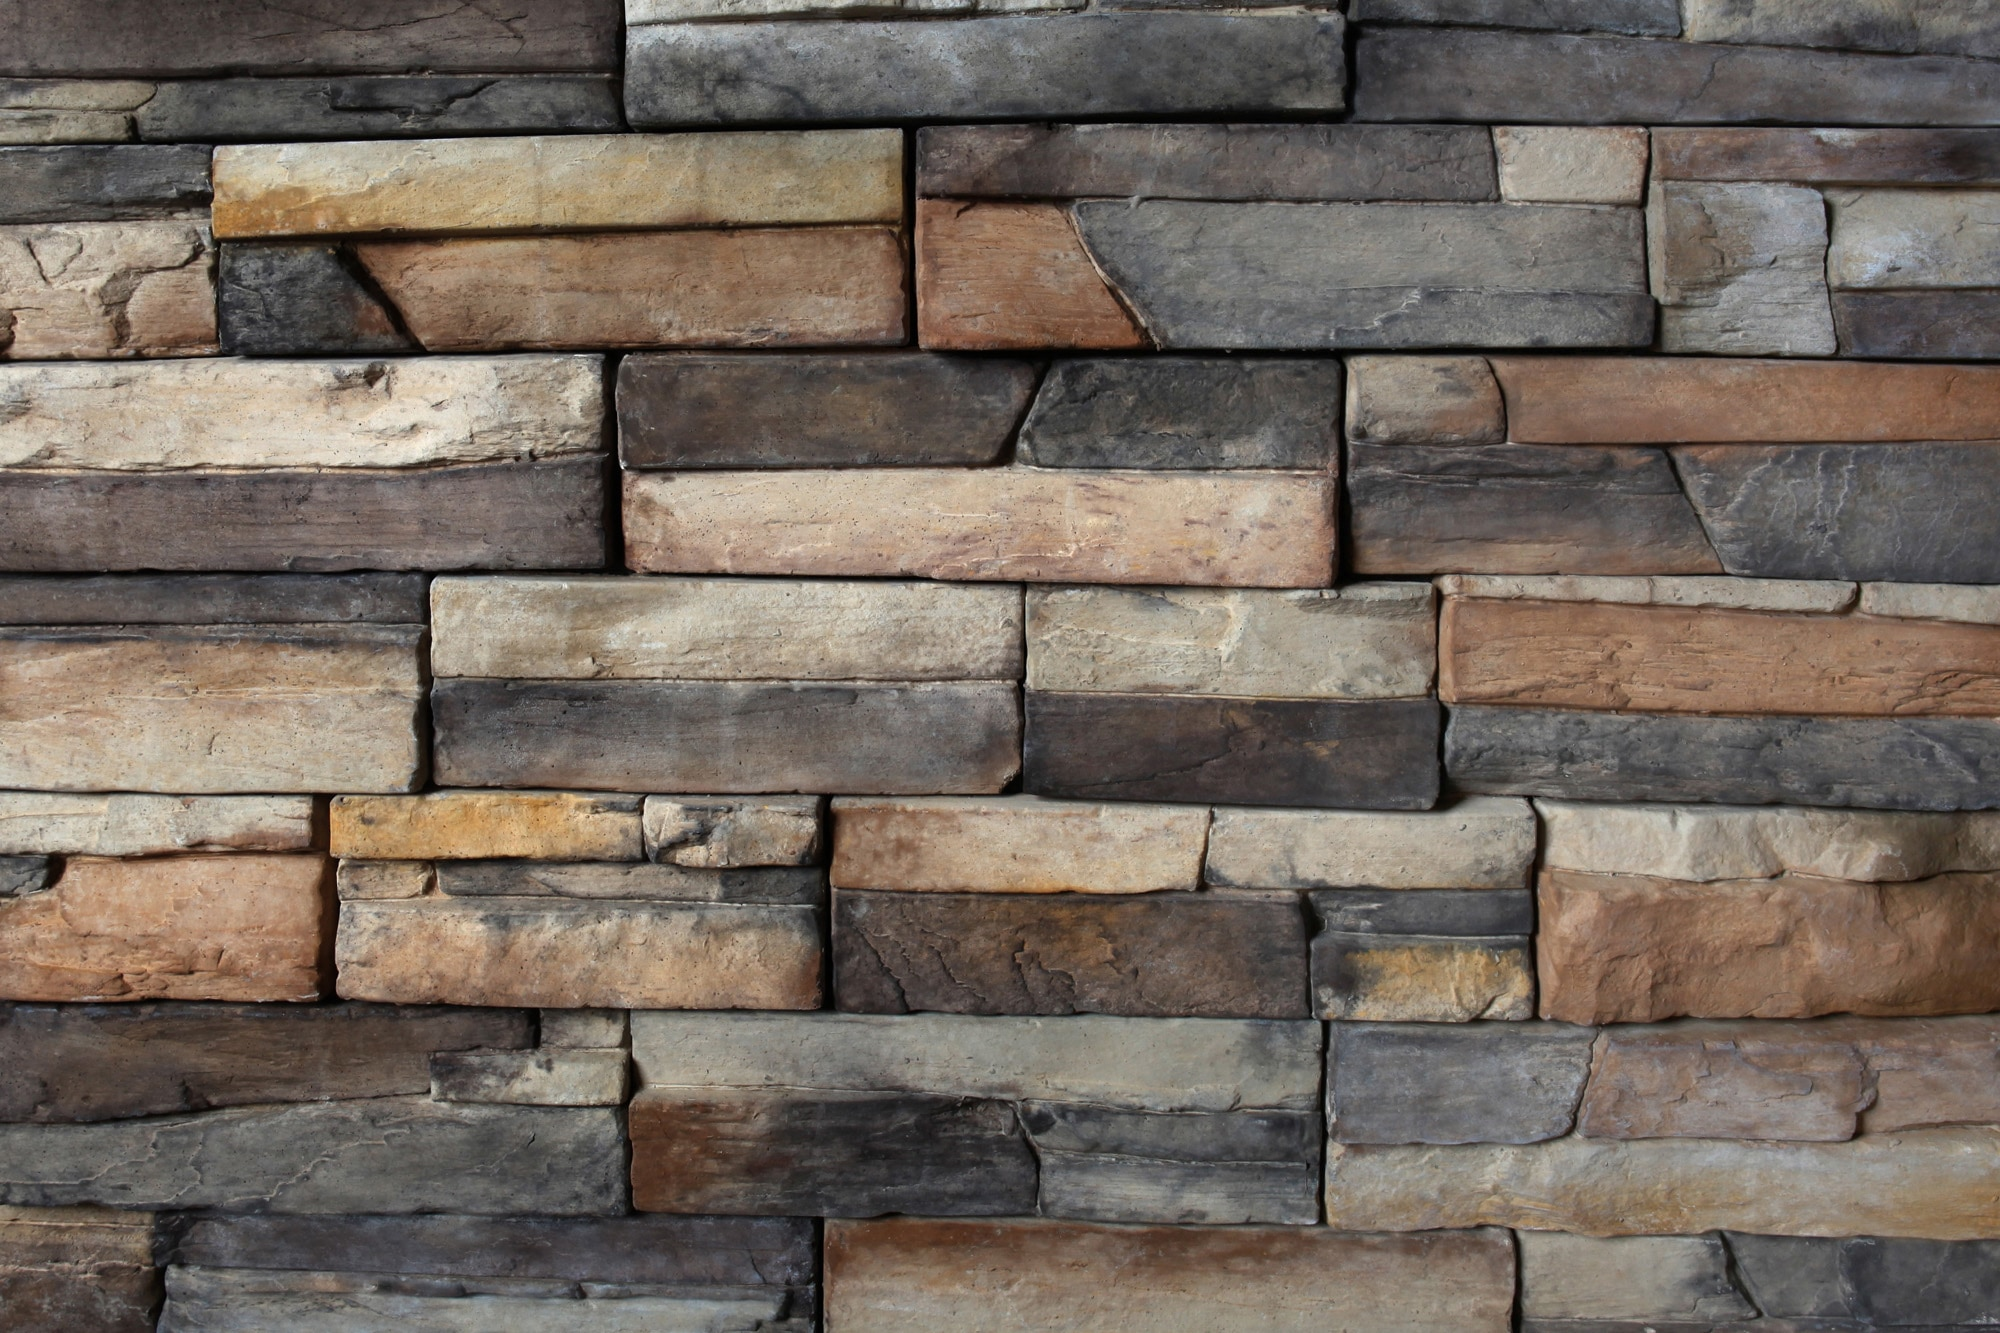 Kodiak Mountain Stone Manufactured Veneer Frontier Ledge